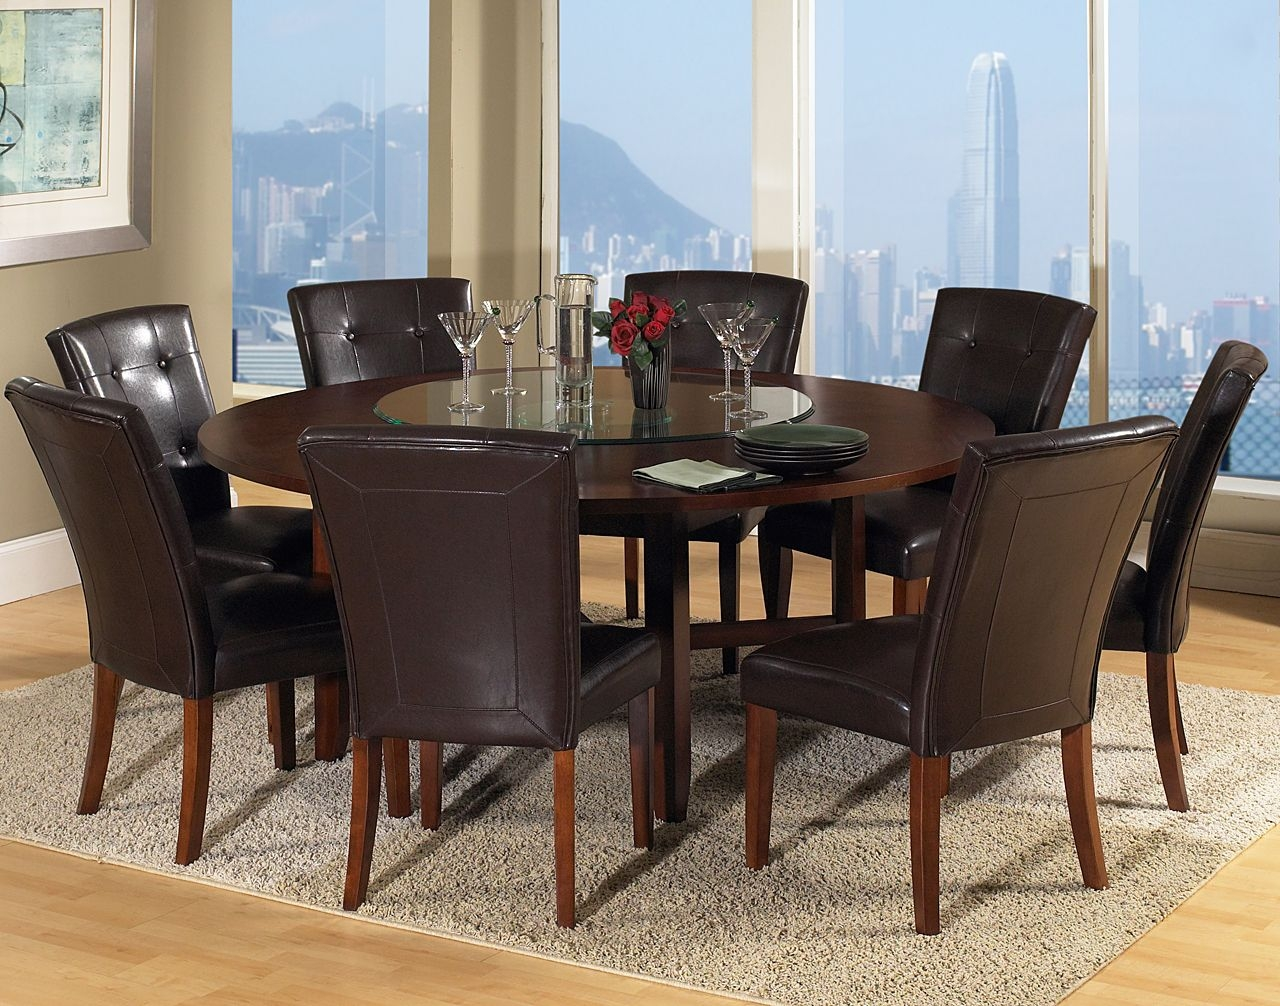 Round Dining Table For 8 People